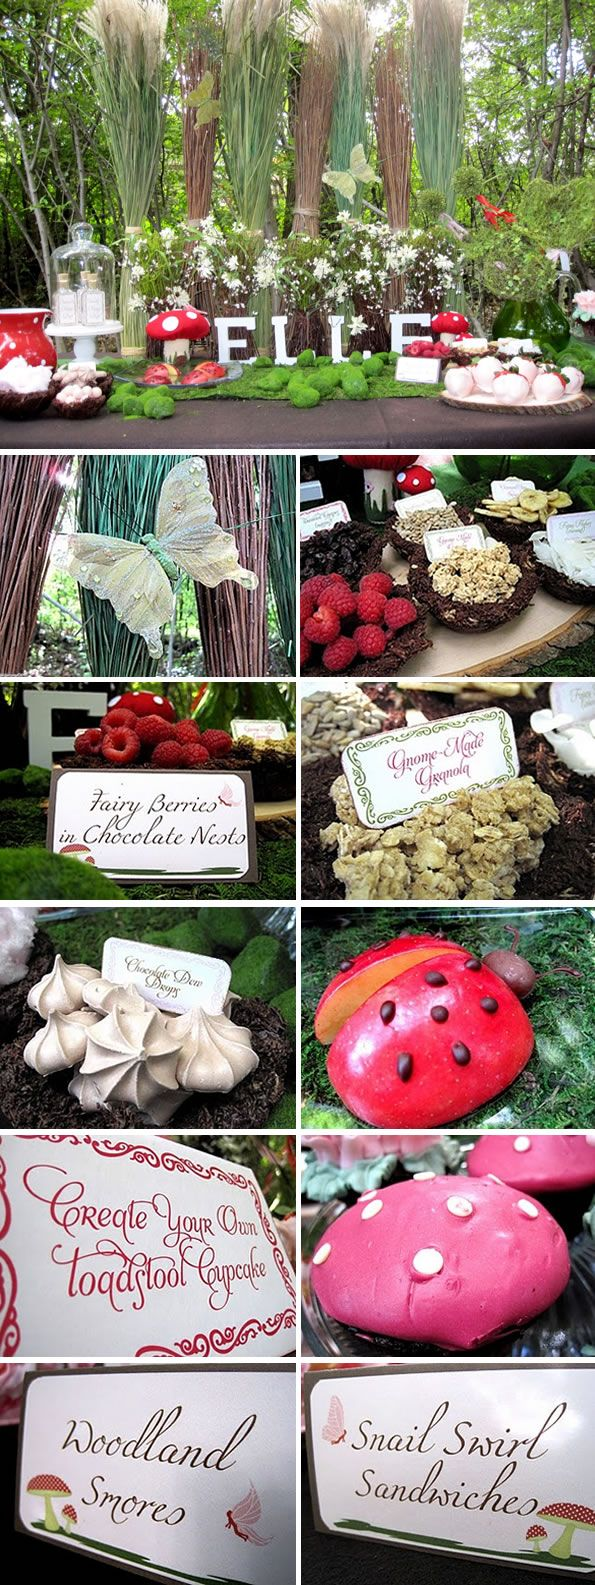 i love everything about this! Great party ideas!